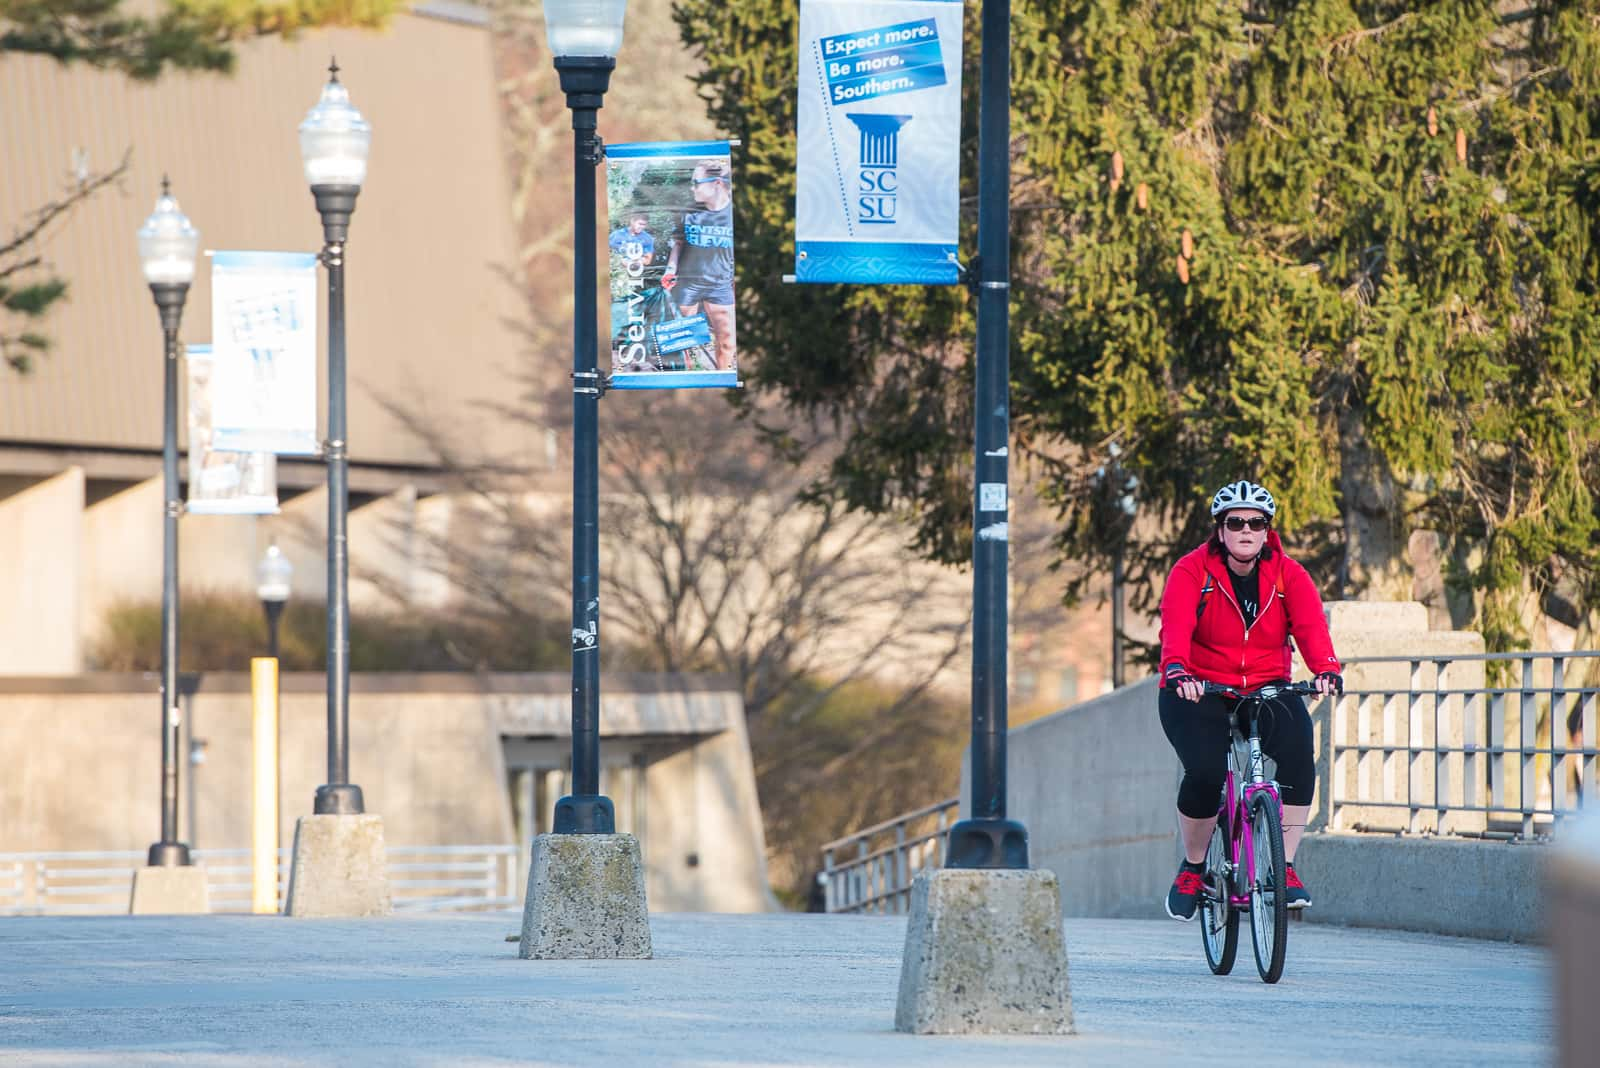 a student rides a bike across the Fitch St footbridge